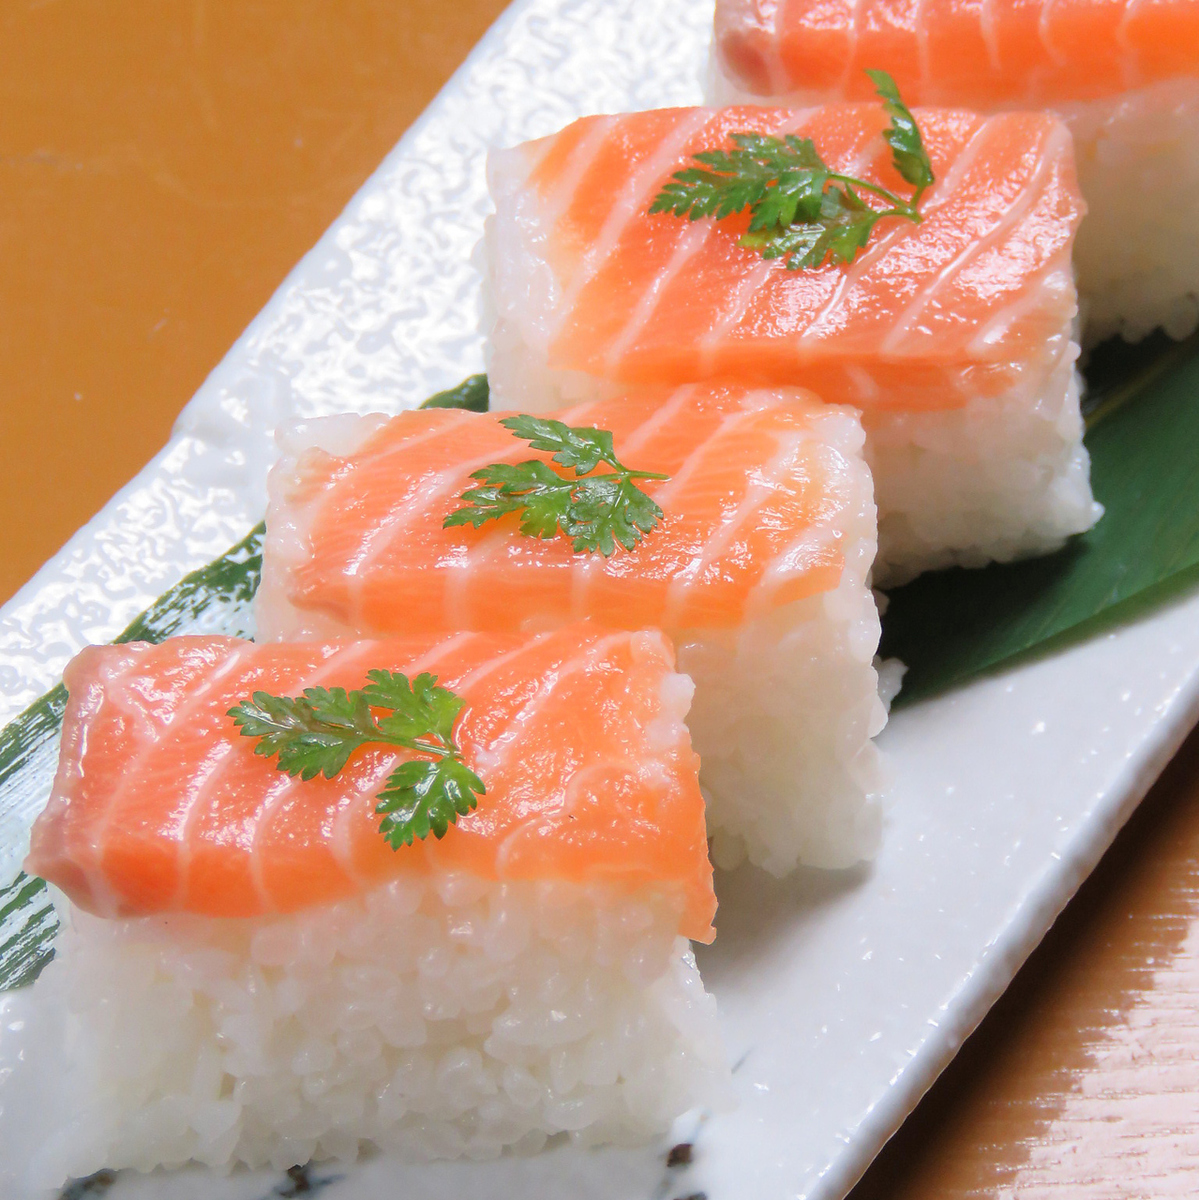 Pushed salmon